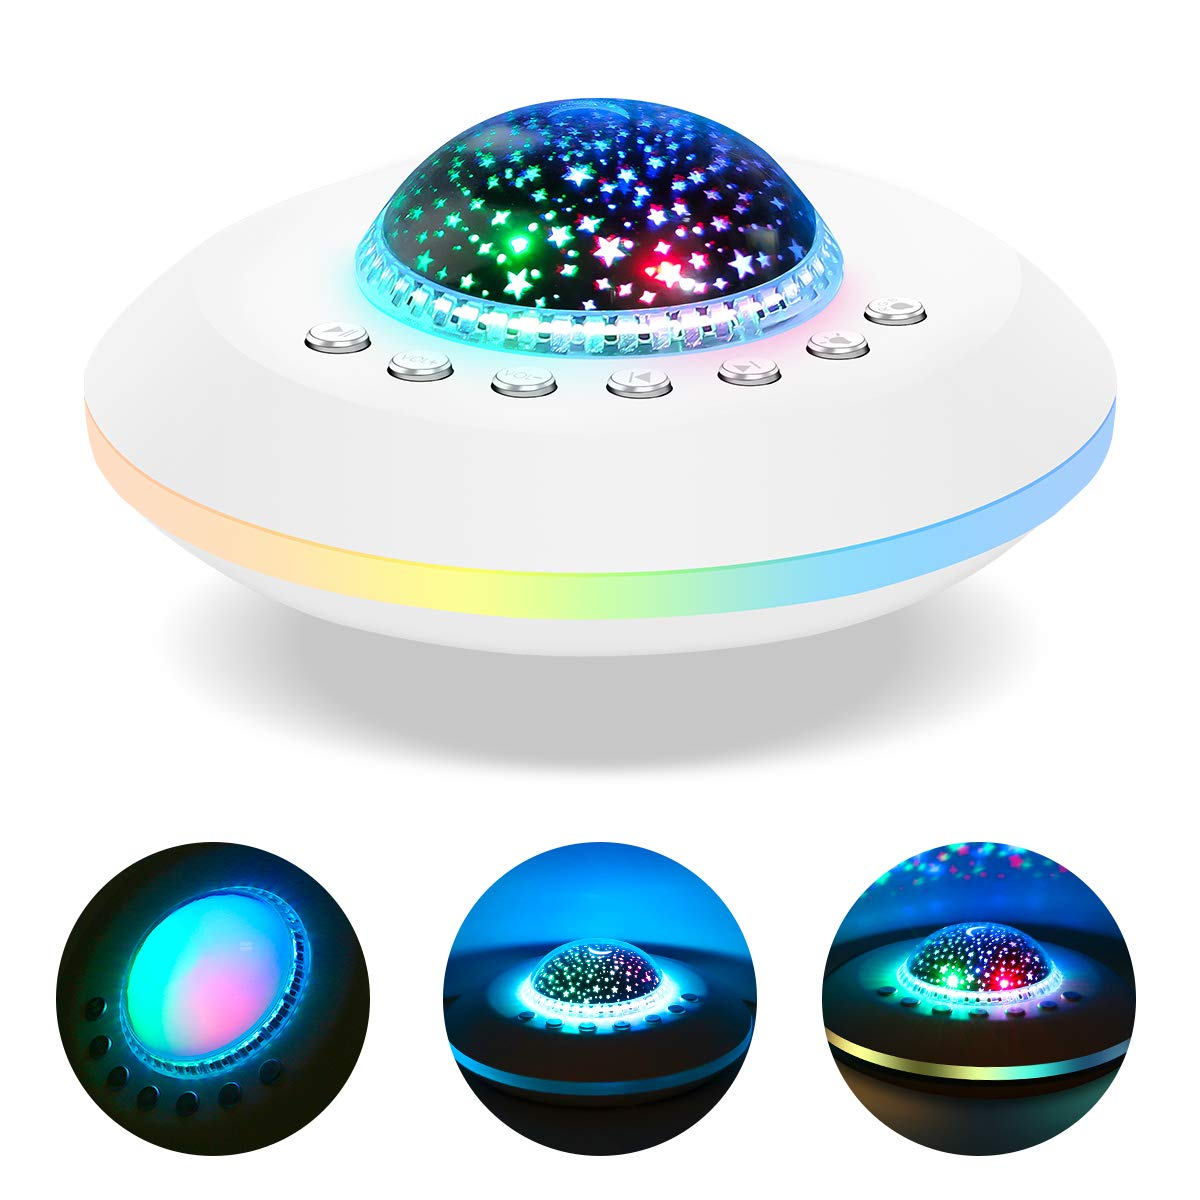 White Noise Machine, Baby Sound Machine - 20 Non-Looping Soothing Nature Sounds/Lullaby with Night Light,Timer & Memory Function-Sleep Music Machine for Kids Adults Nursery by sendcool